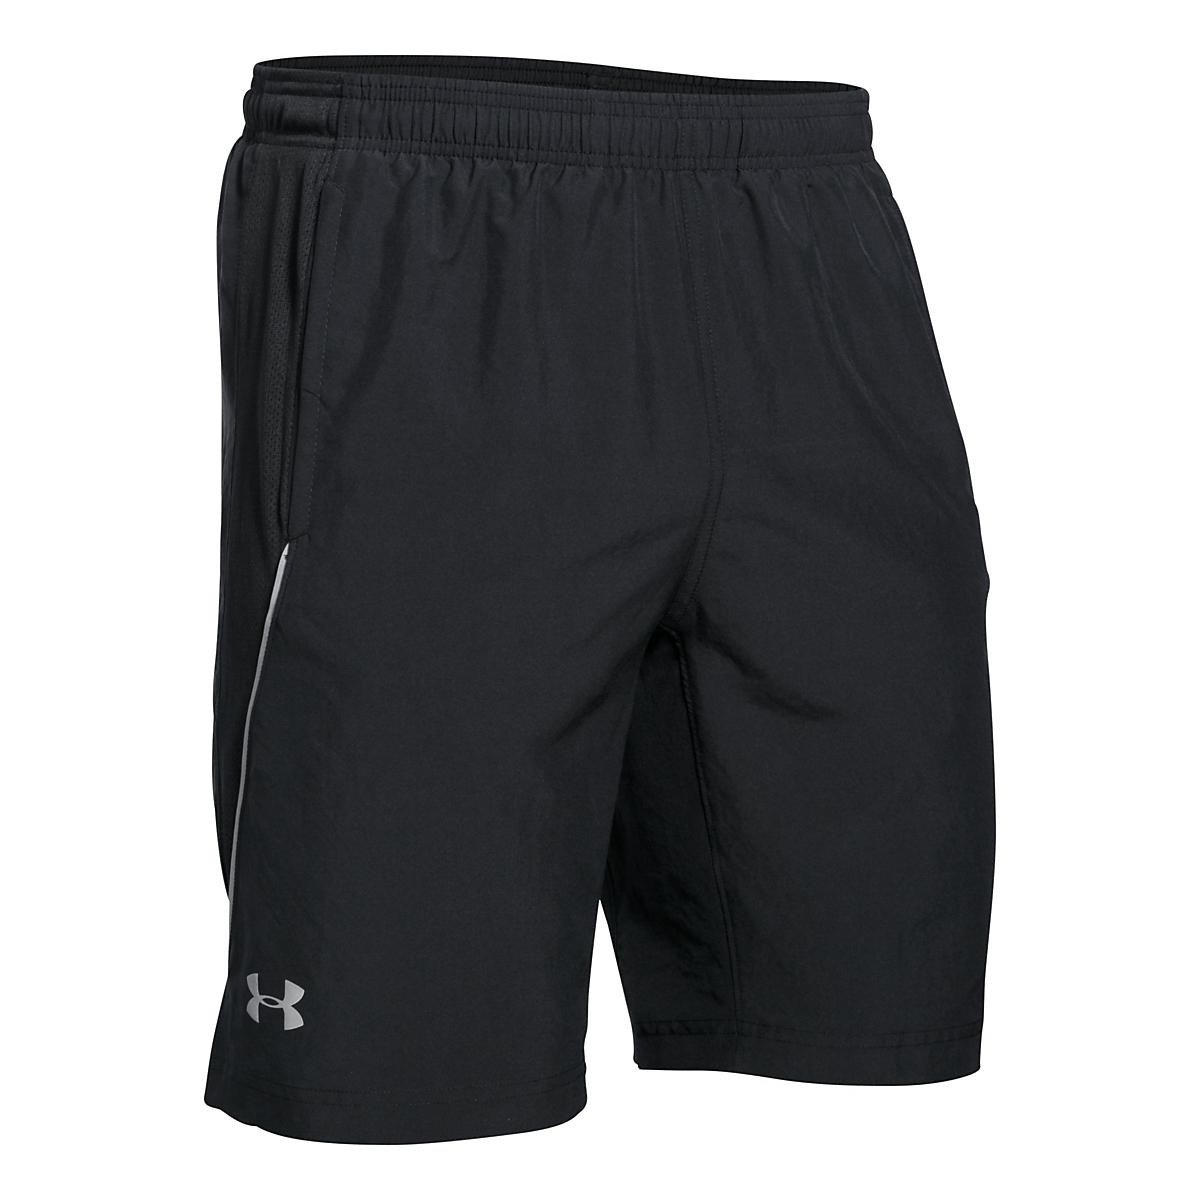 Men's Under Armour�Launch Woven 9